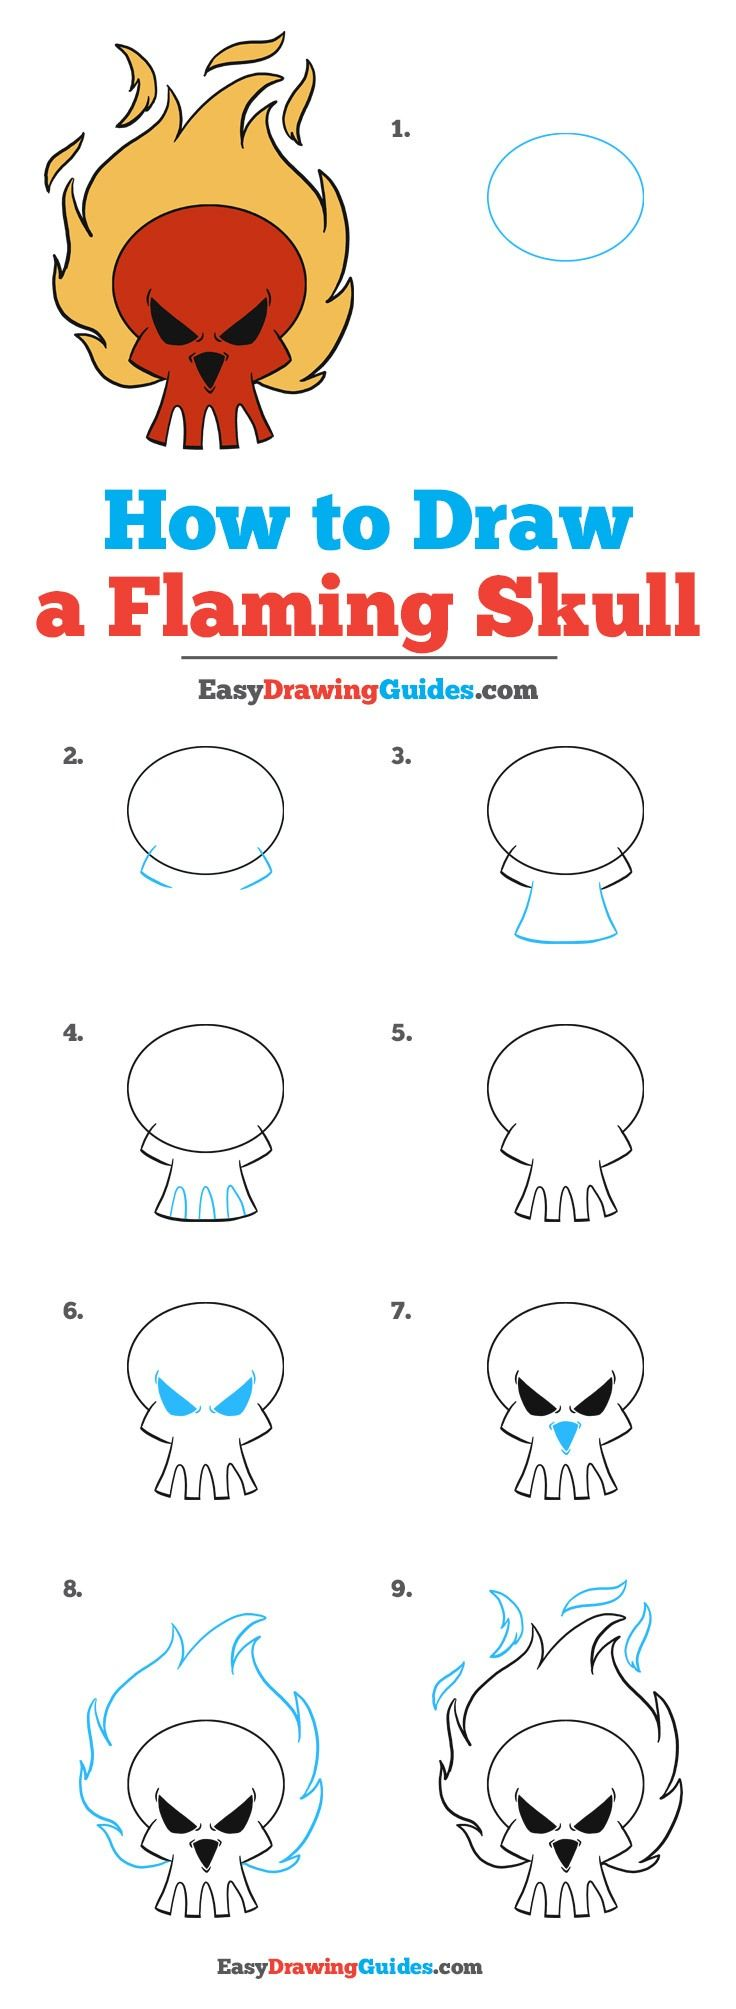 How to Draw a Flaming Skull (With images) Drawing